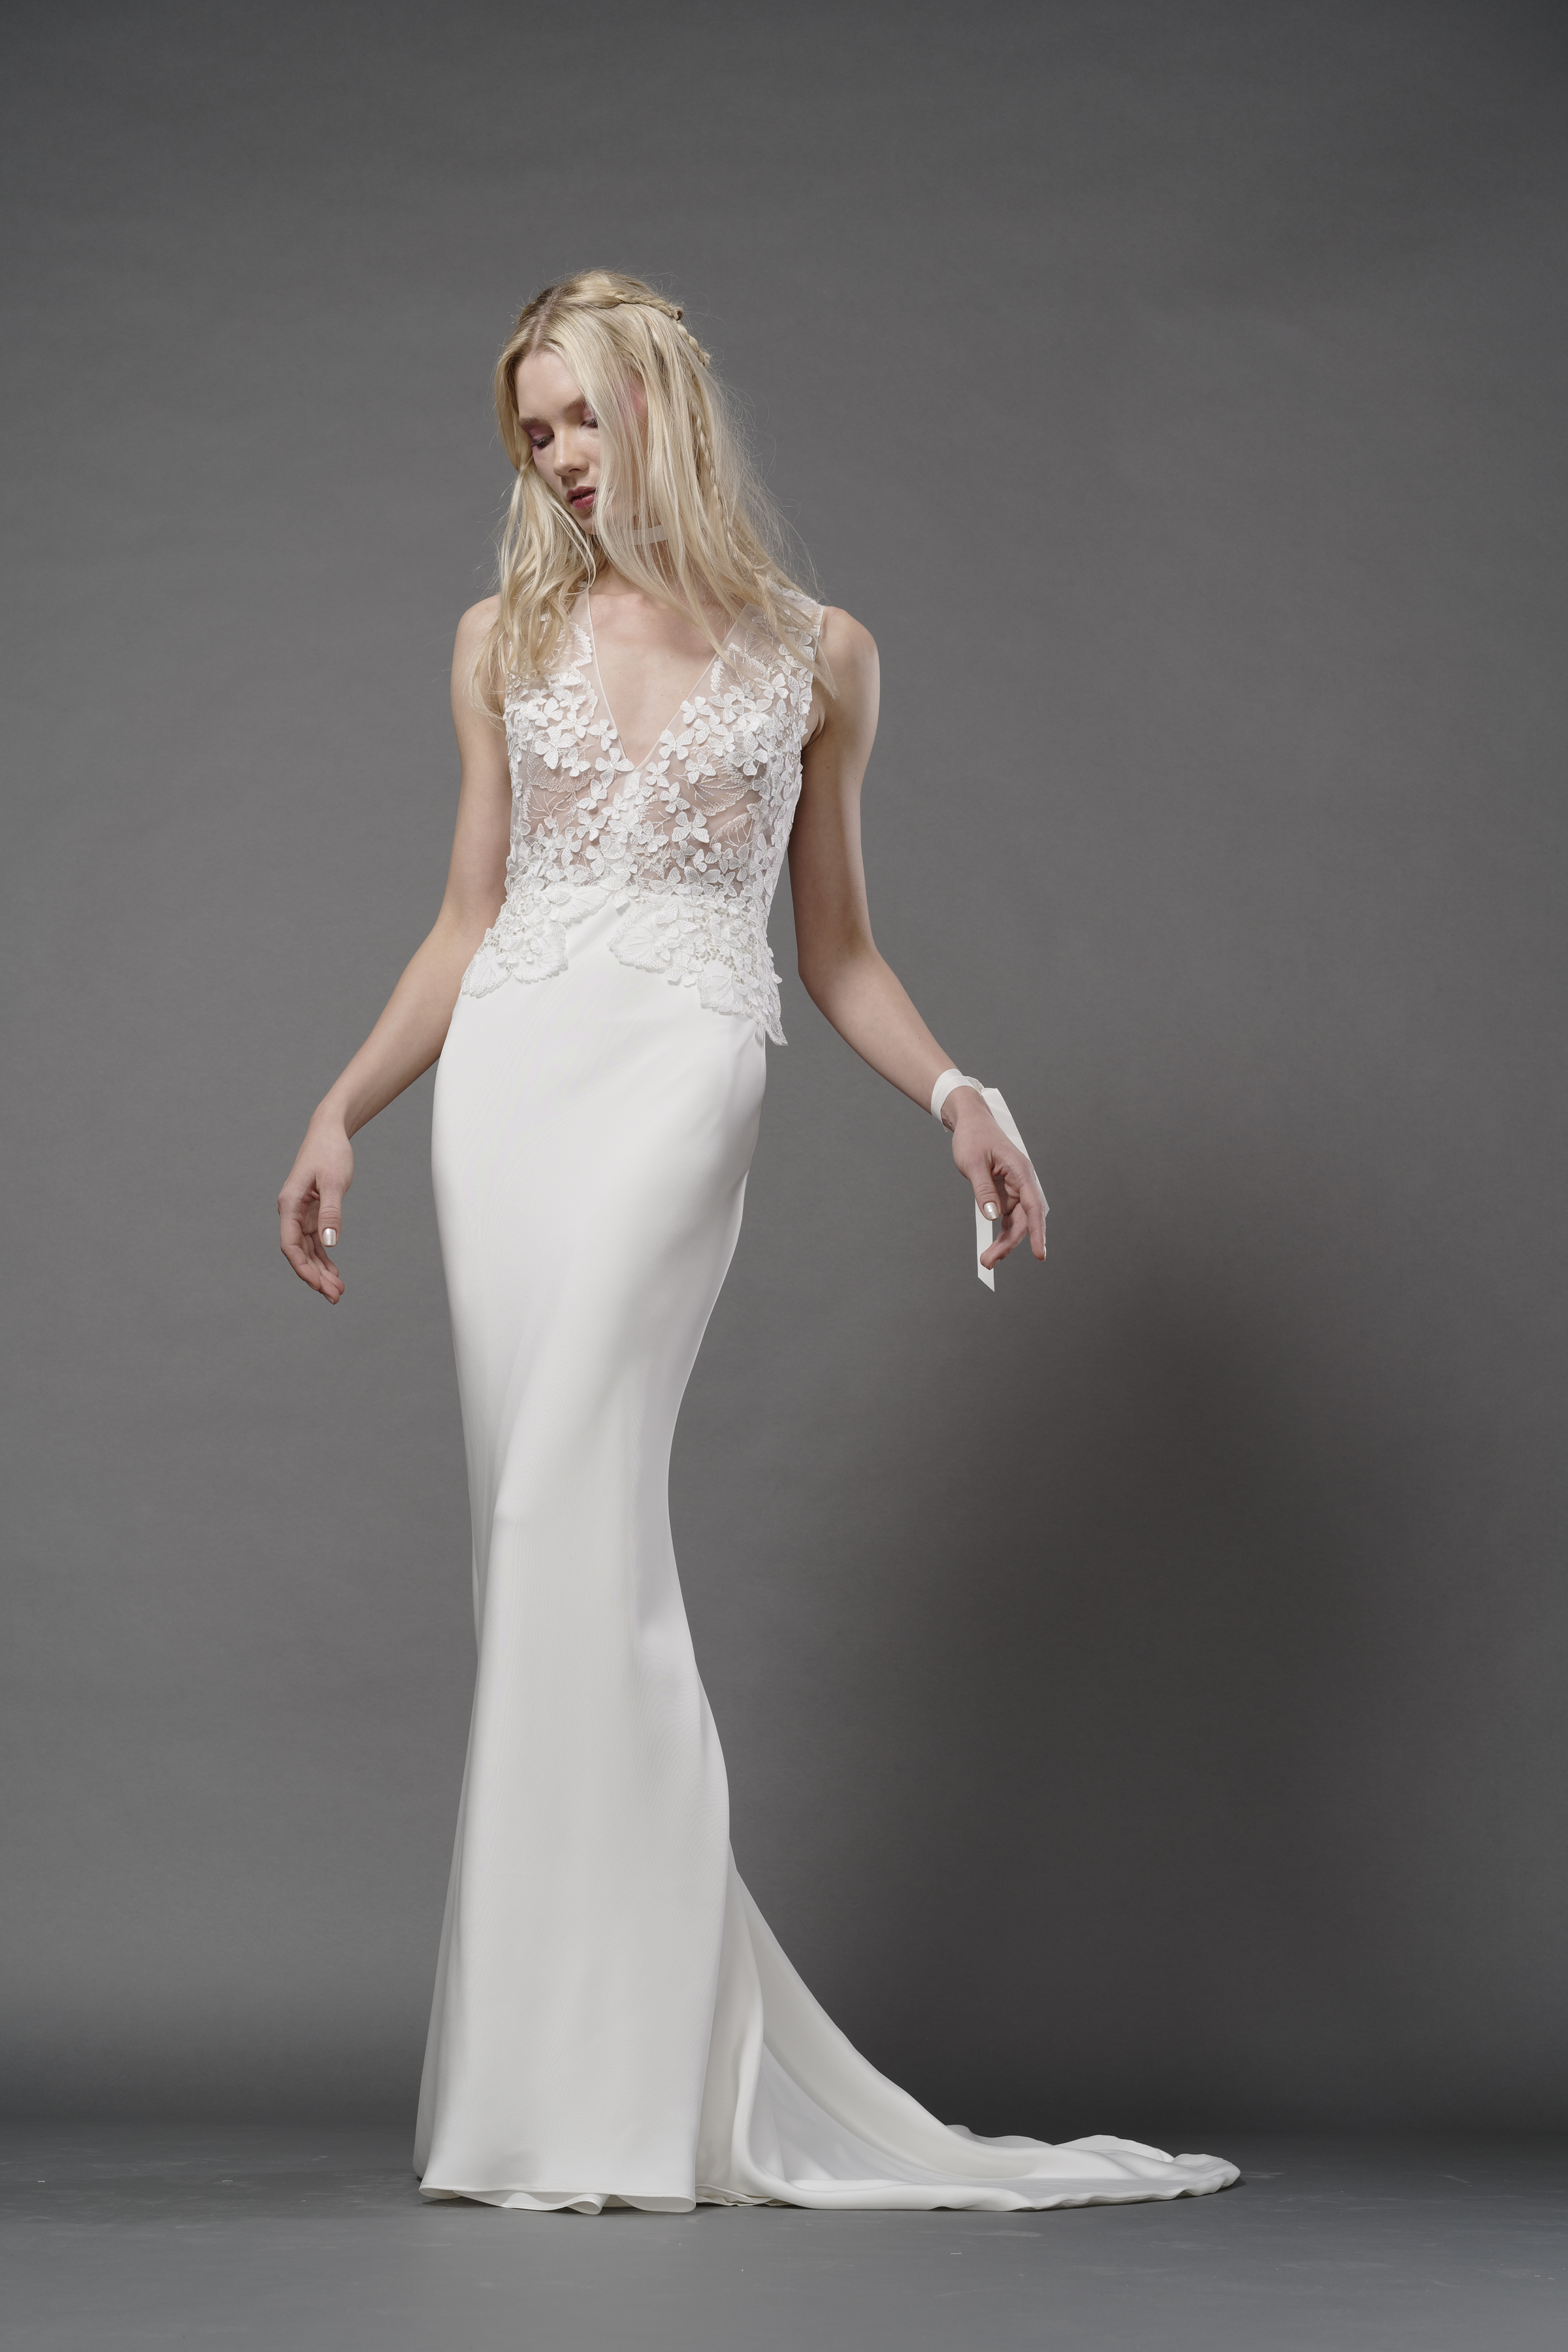 Elizabeth Fillmore Fall 2019 Wedding Dress Collection